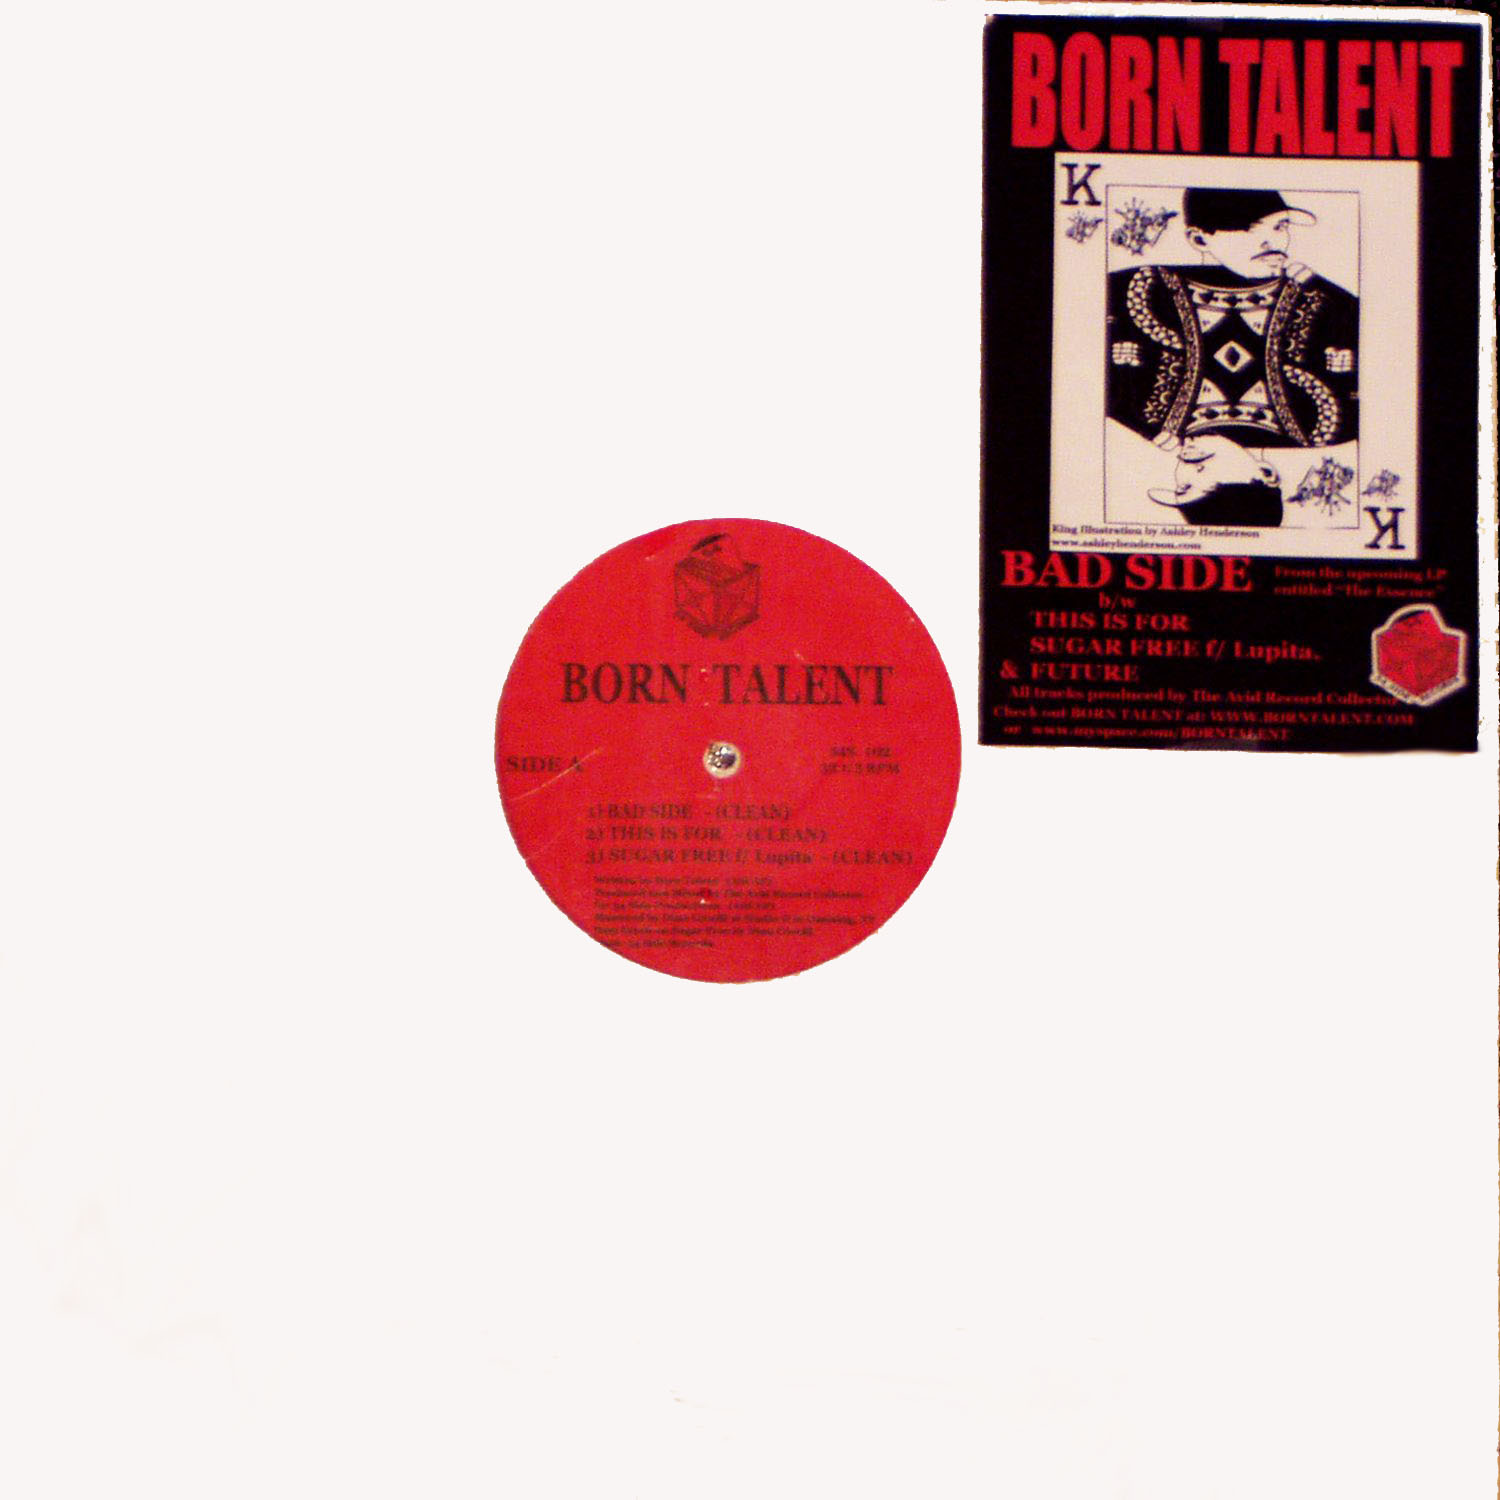 Born Talent- BAD SIDE [Vinyl]